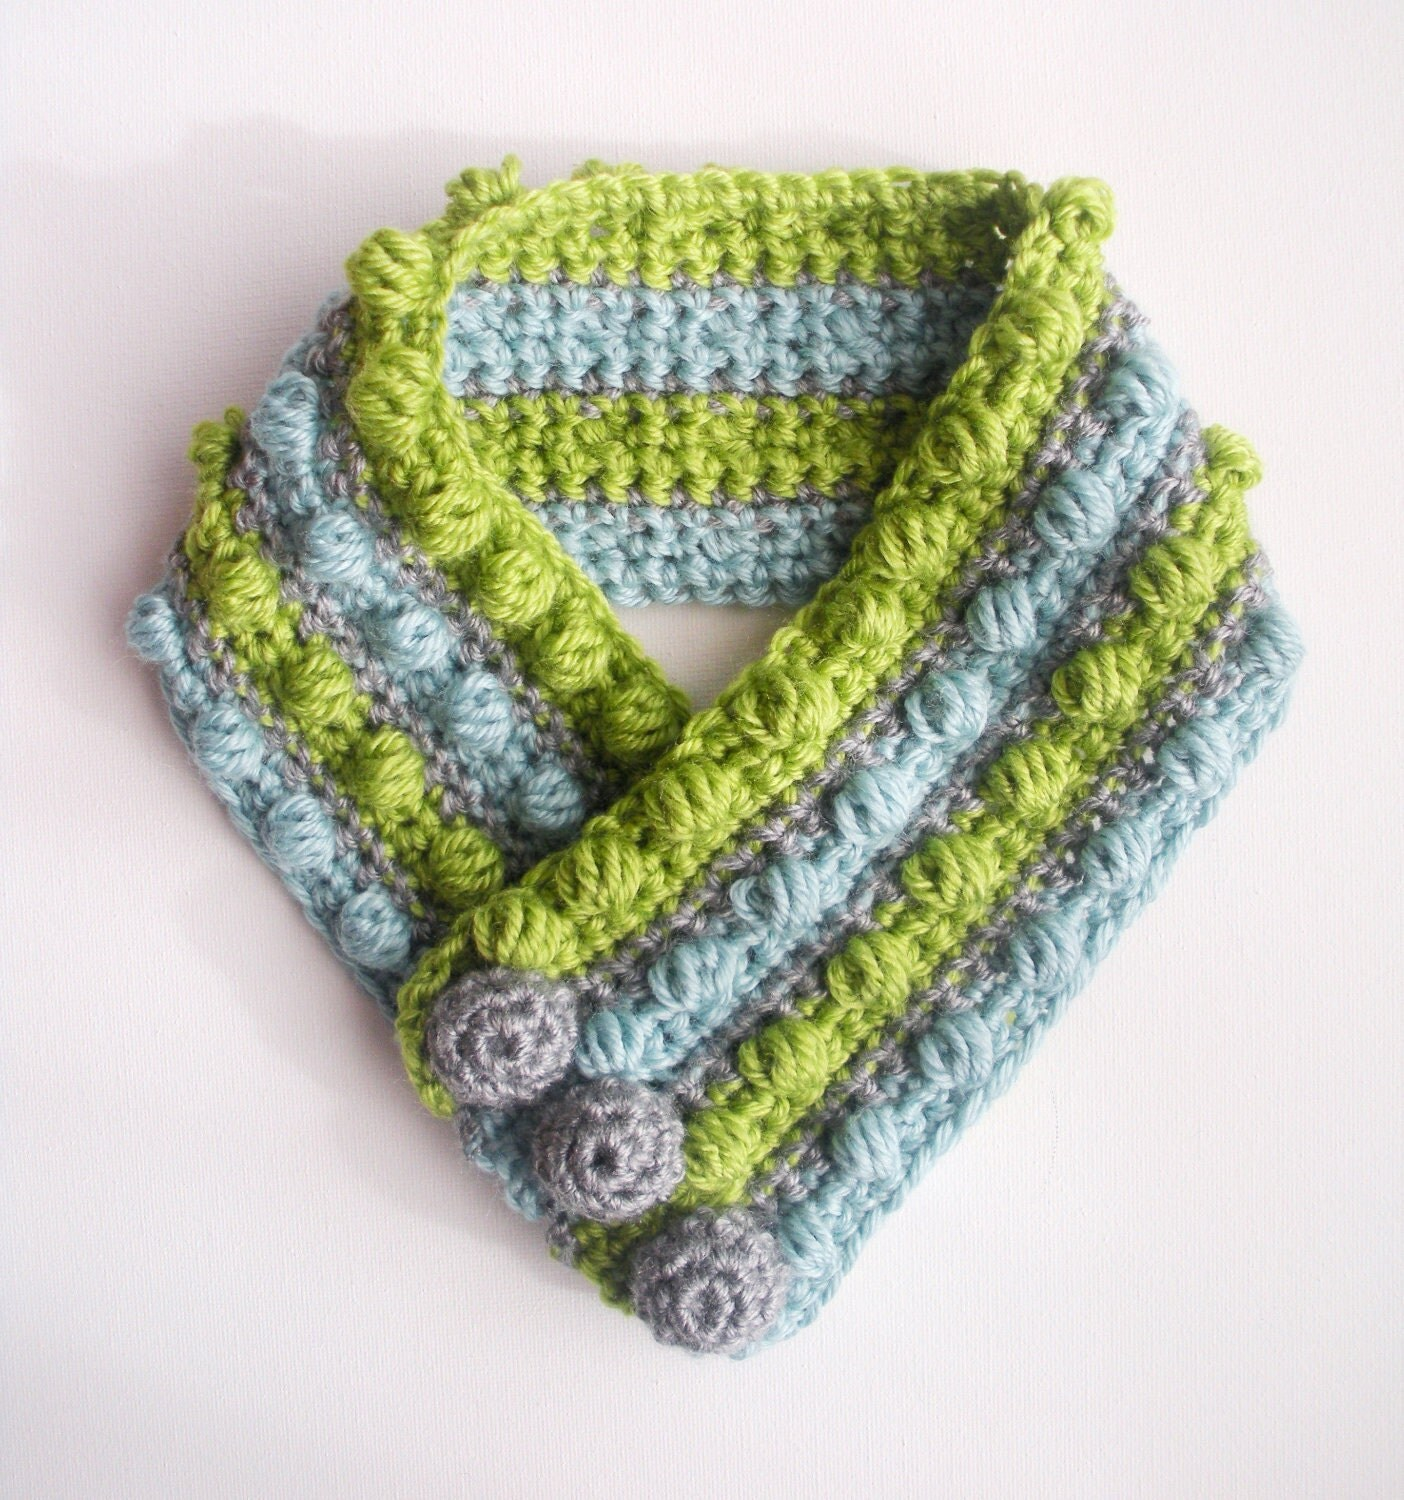 Crocheting Scarves : Crochet Scarf Gumdrops Wool Bamboo Unisex Striped Neck Crochet ...